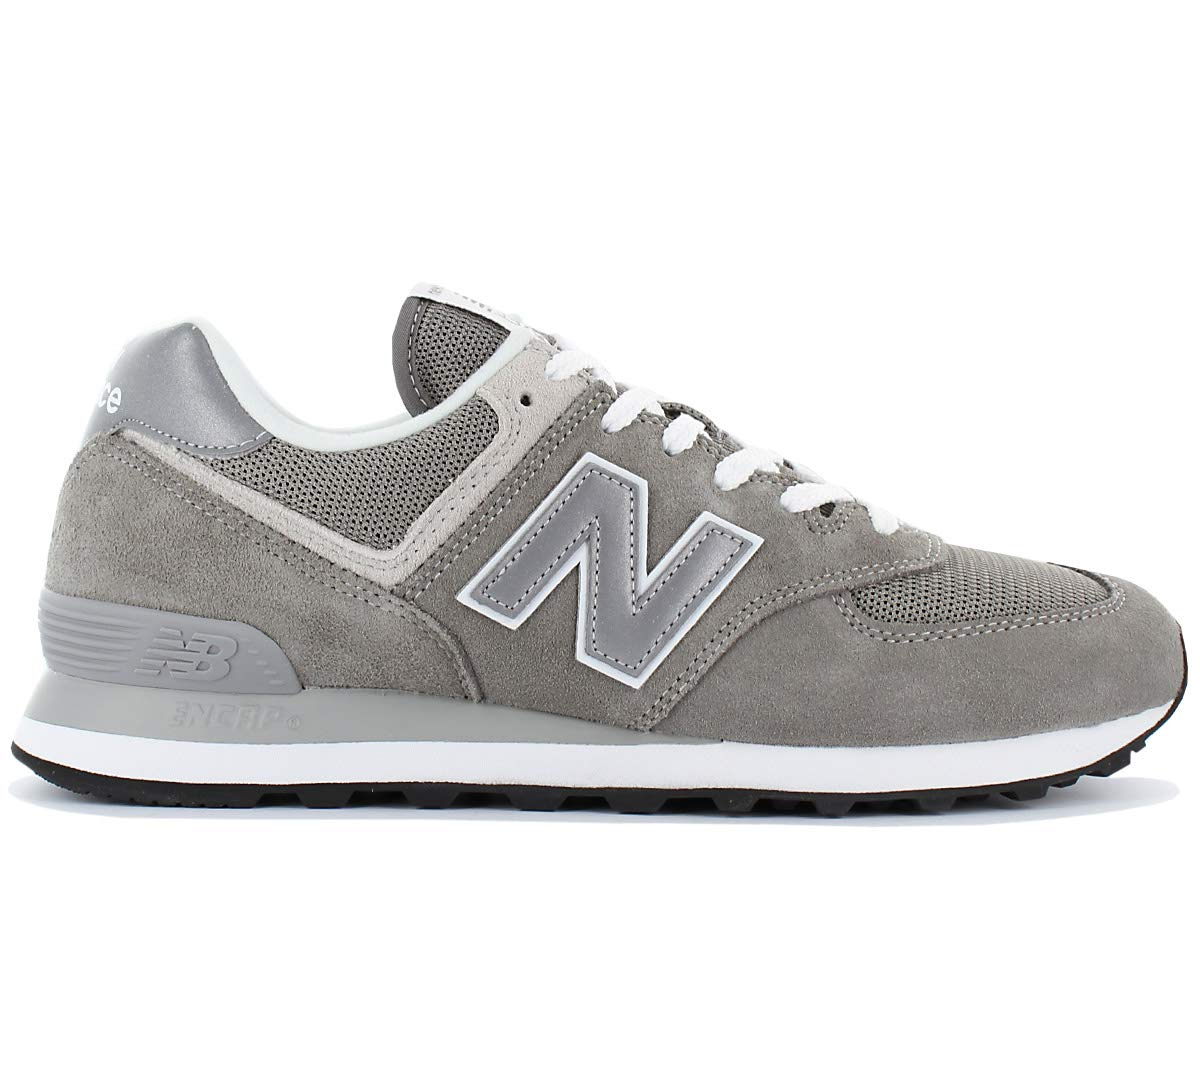 New Balance Mens 574 Sneaker,Grey, 8 D(M) US by New Balance